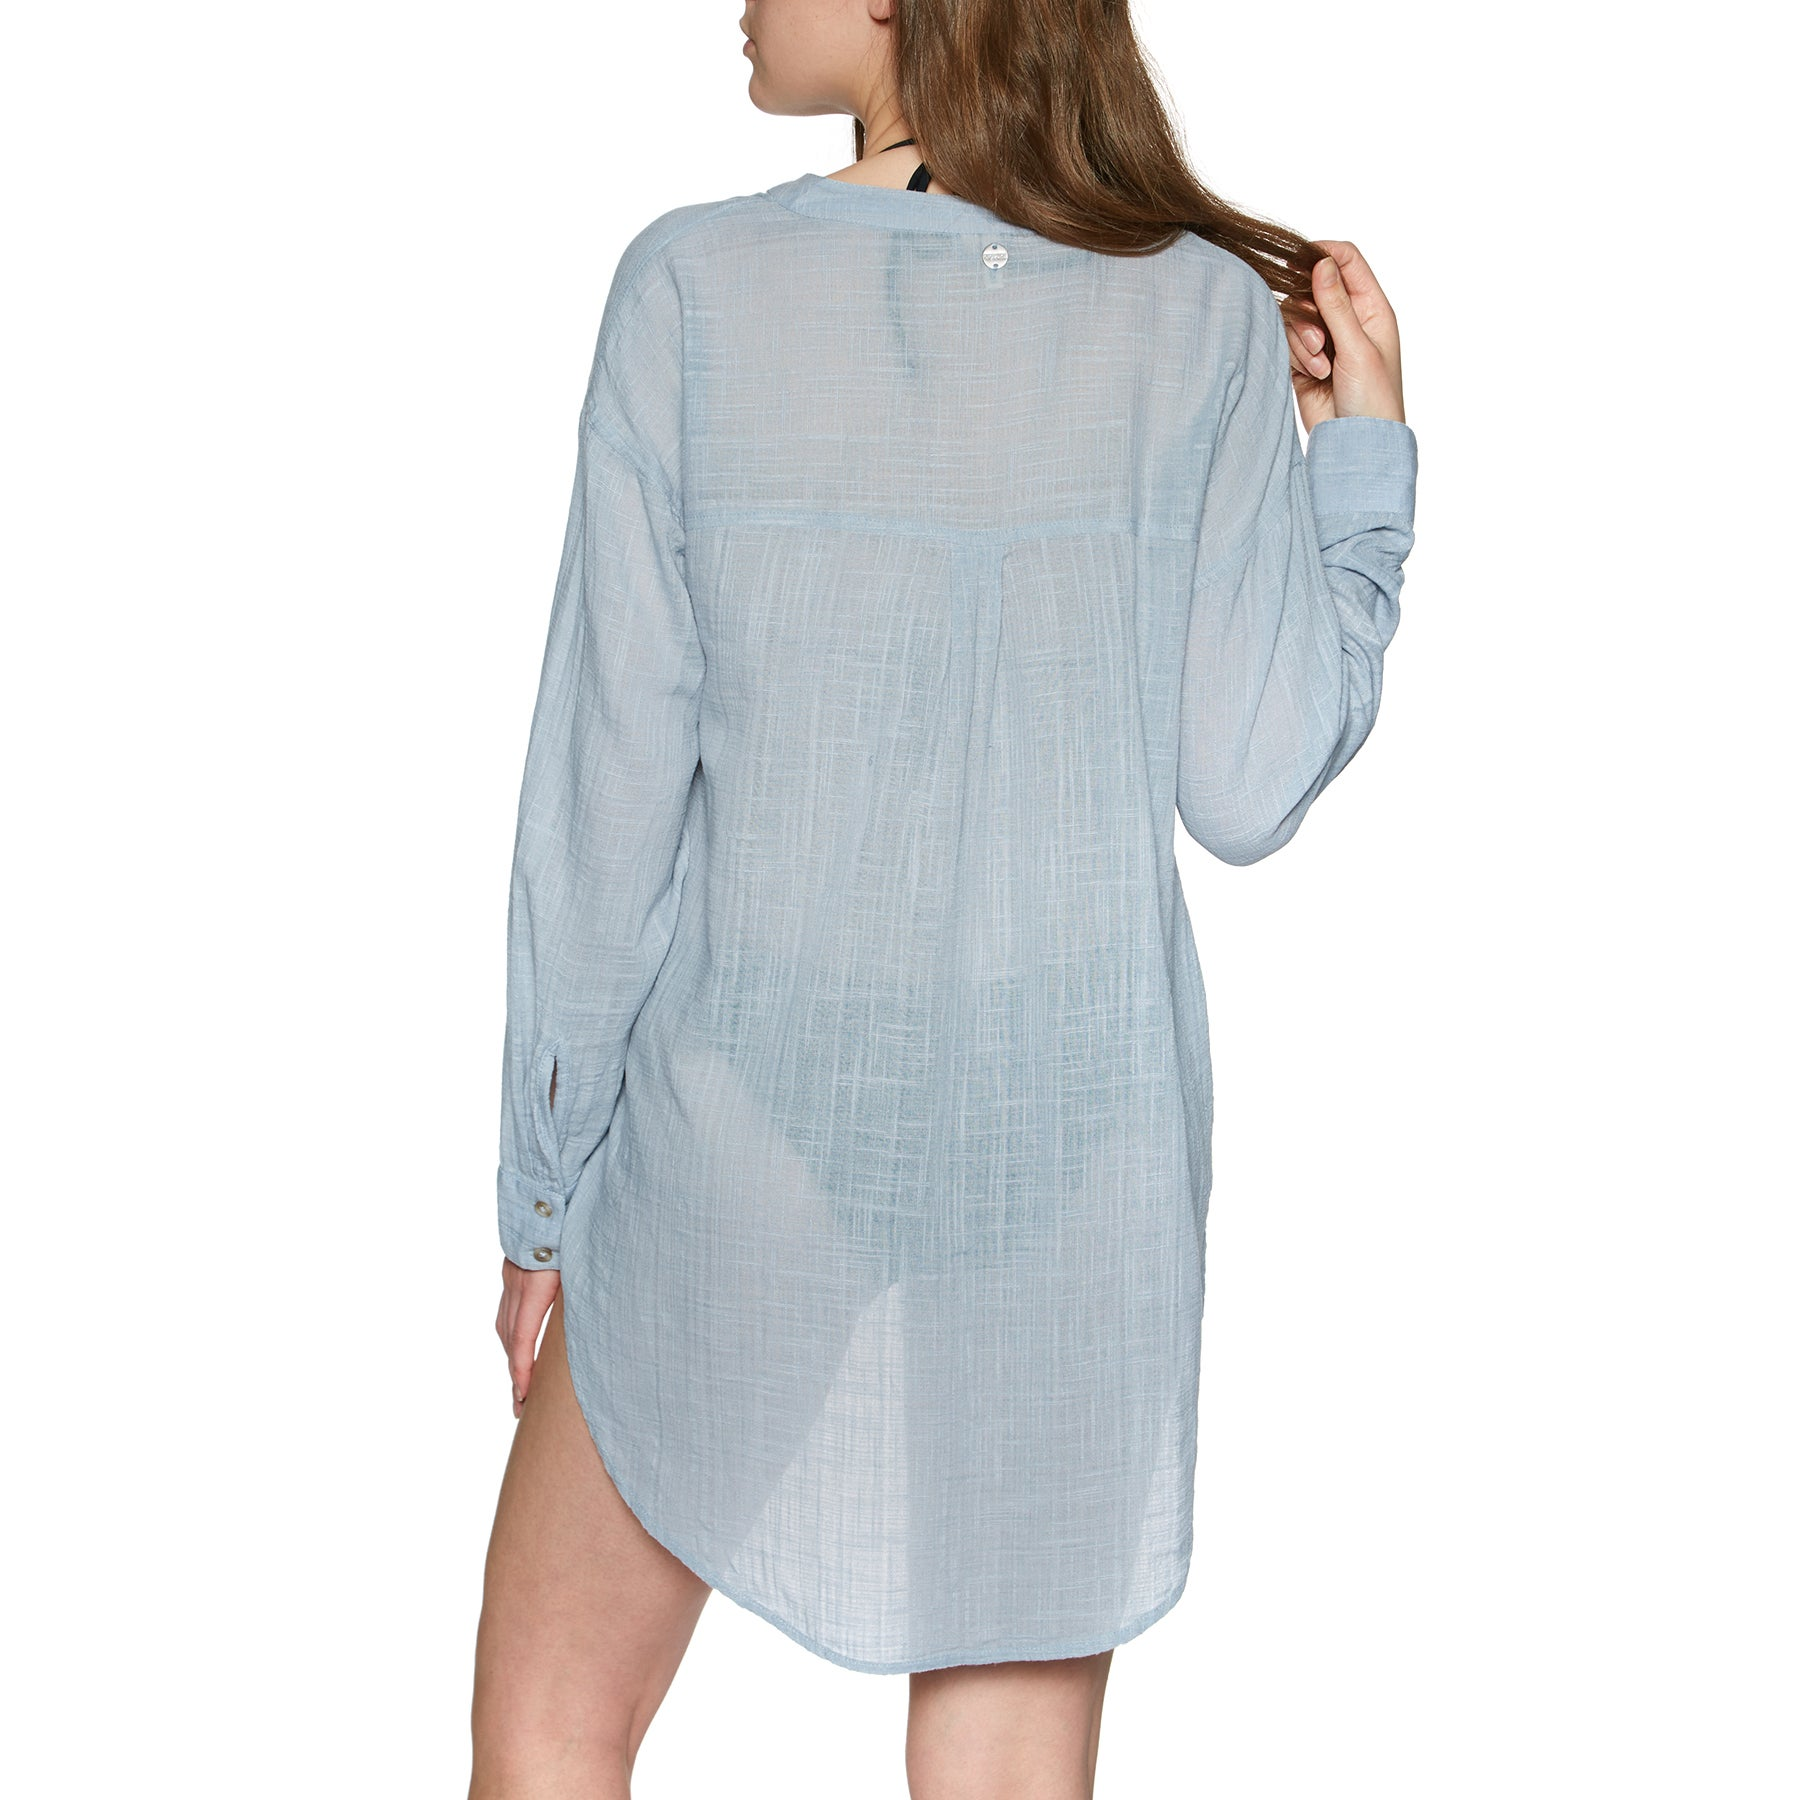 Camisa Senhora Rip Curl Koa Beach Cover up - Blue